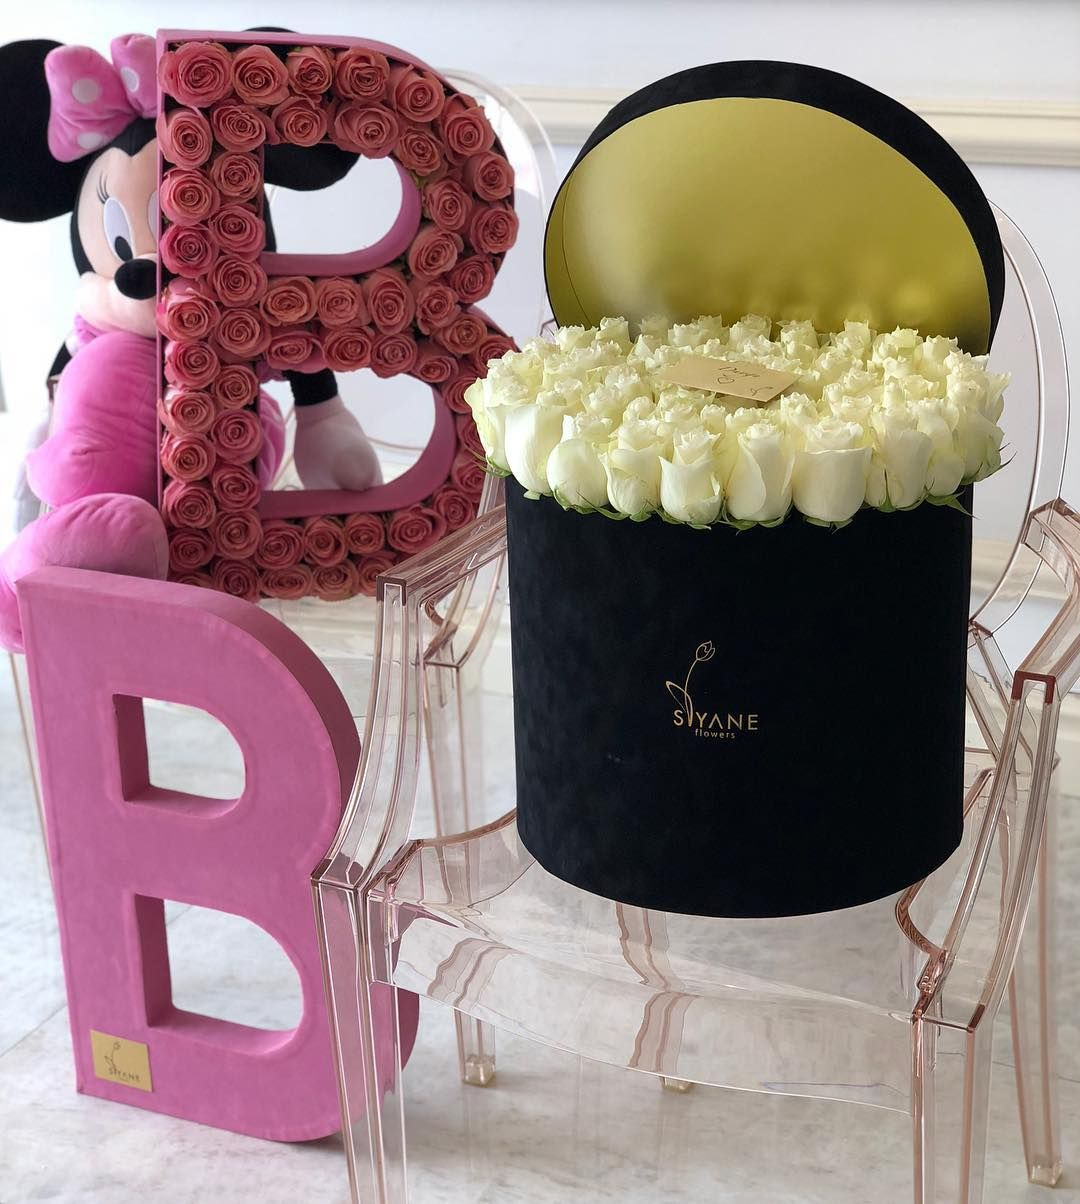 Pin By Shimi Mikko On Roses Flower Arrangements Hanging Baskets Gifts